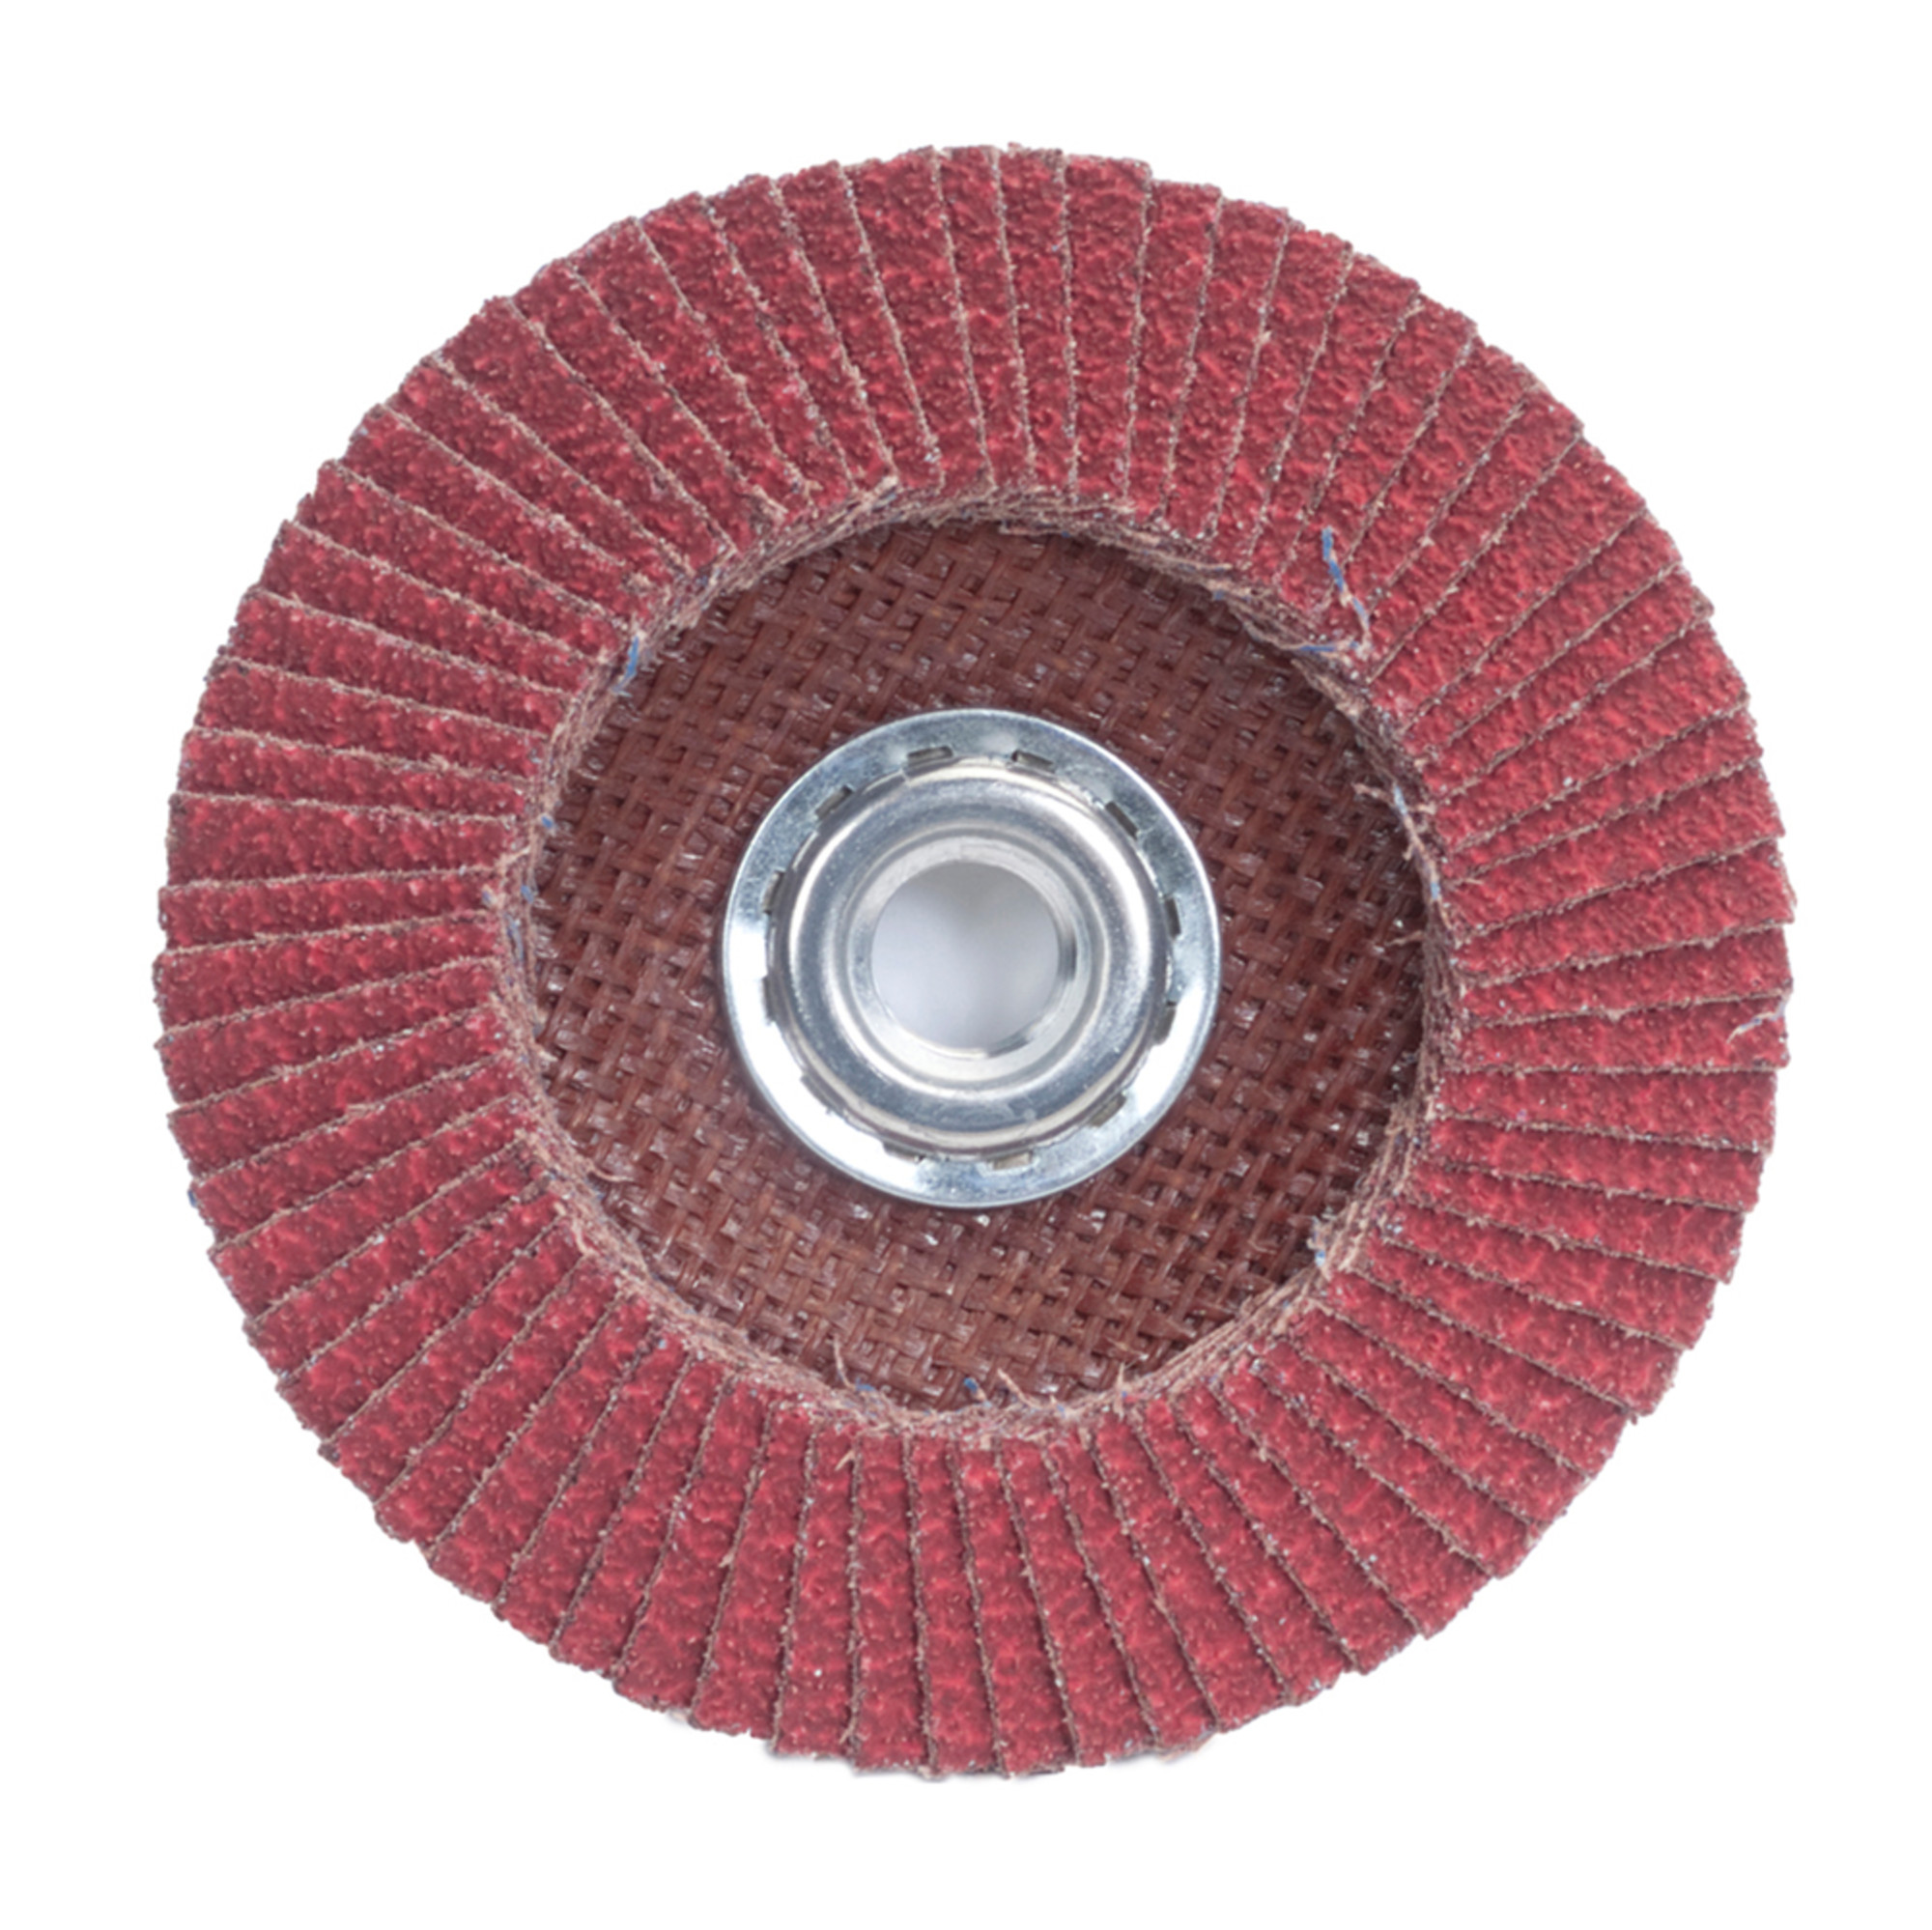 Threaded Hole 4-1/2 Dia. Merit Powerflex Contoured Abrasive Flap Disc  Fiberglass Backing 80 Grit Pack of 1 Type 29 Ceramic Aluminum Oxide Flap  Discs Power & Hand Tools